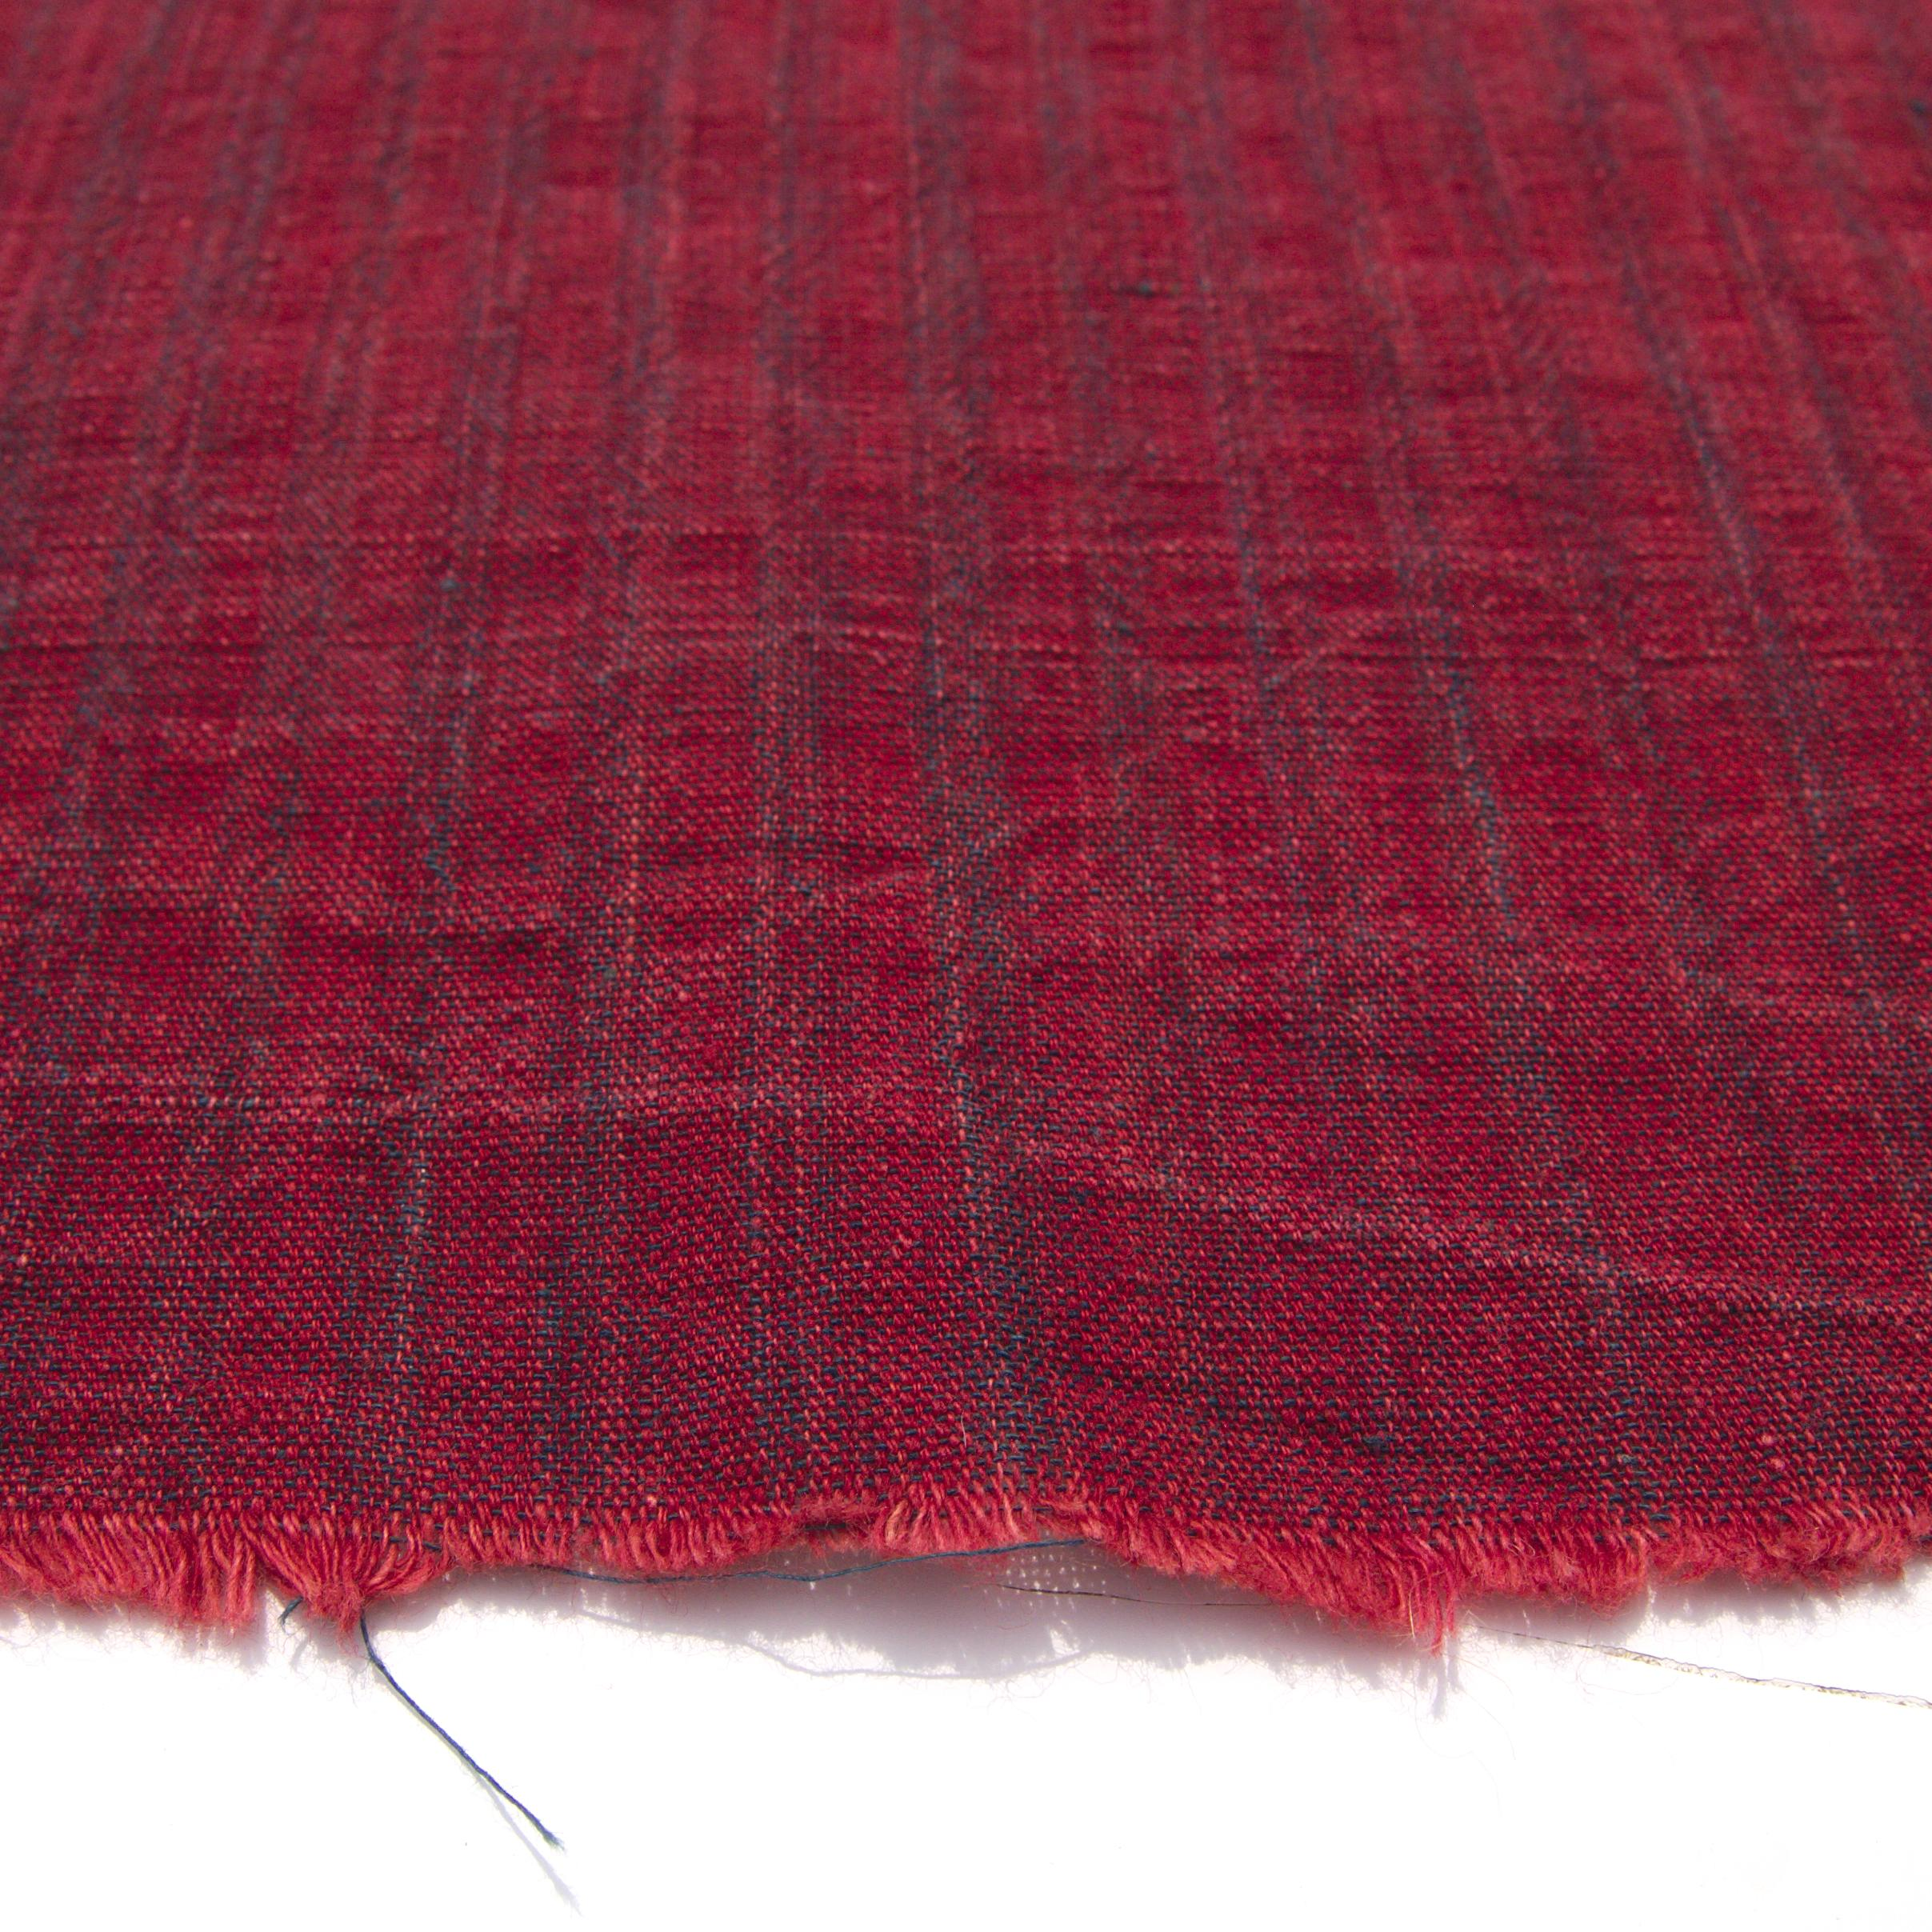 100% Handloom Woven Cotton - Dented Stripes - Red Alizarin Dented Warp, Natural Indigo Green Warp - Close Up